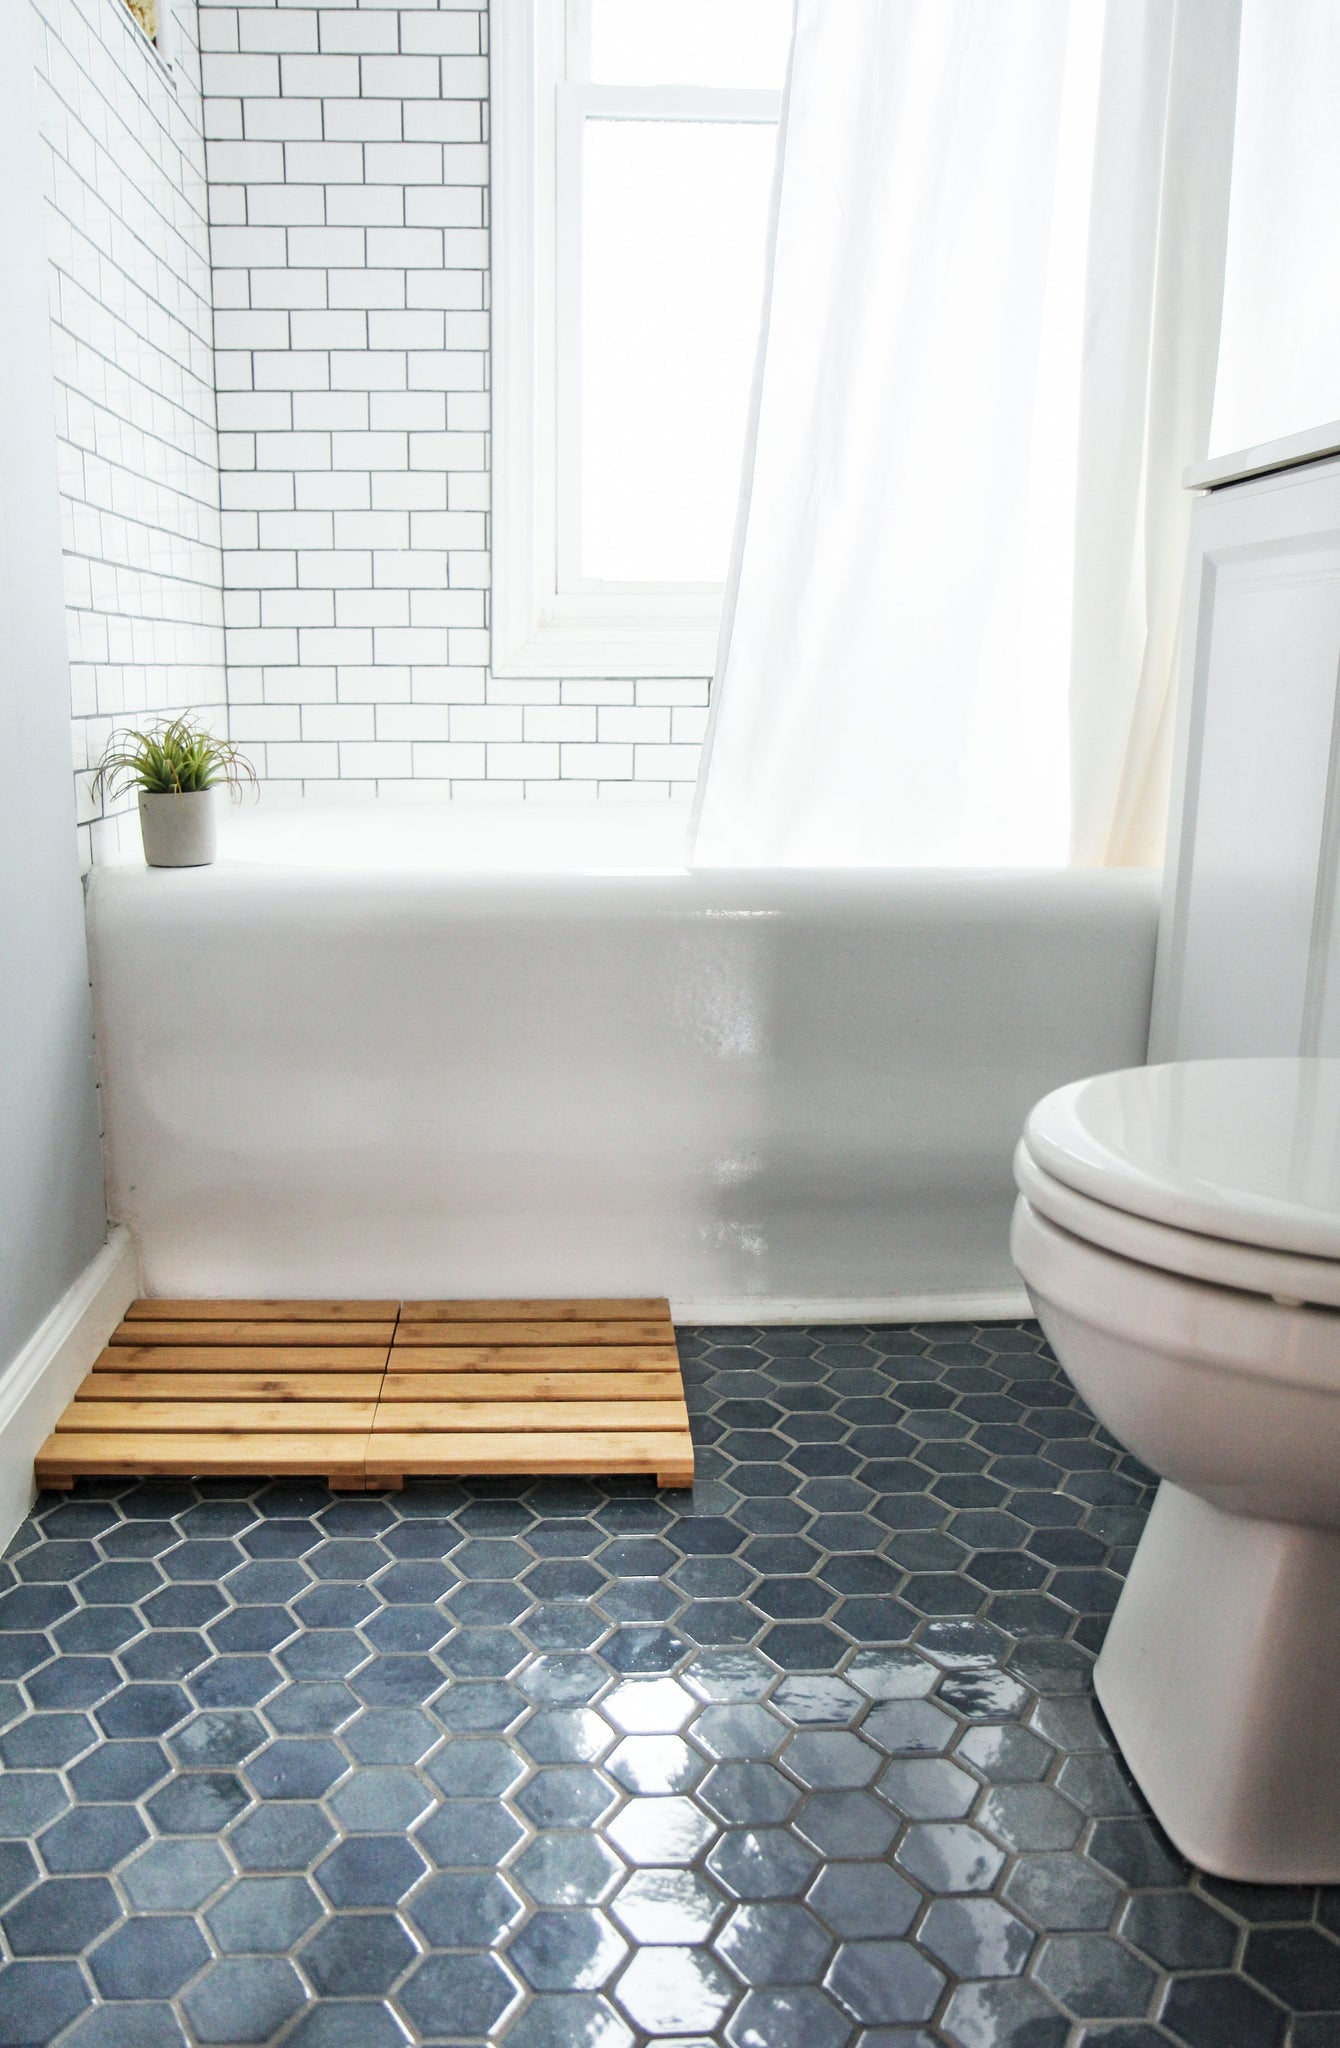 8 Things I Learned During My Bathroom Tile Renovation